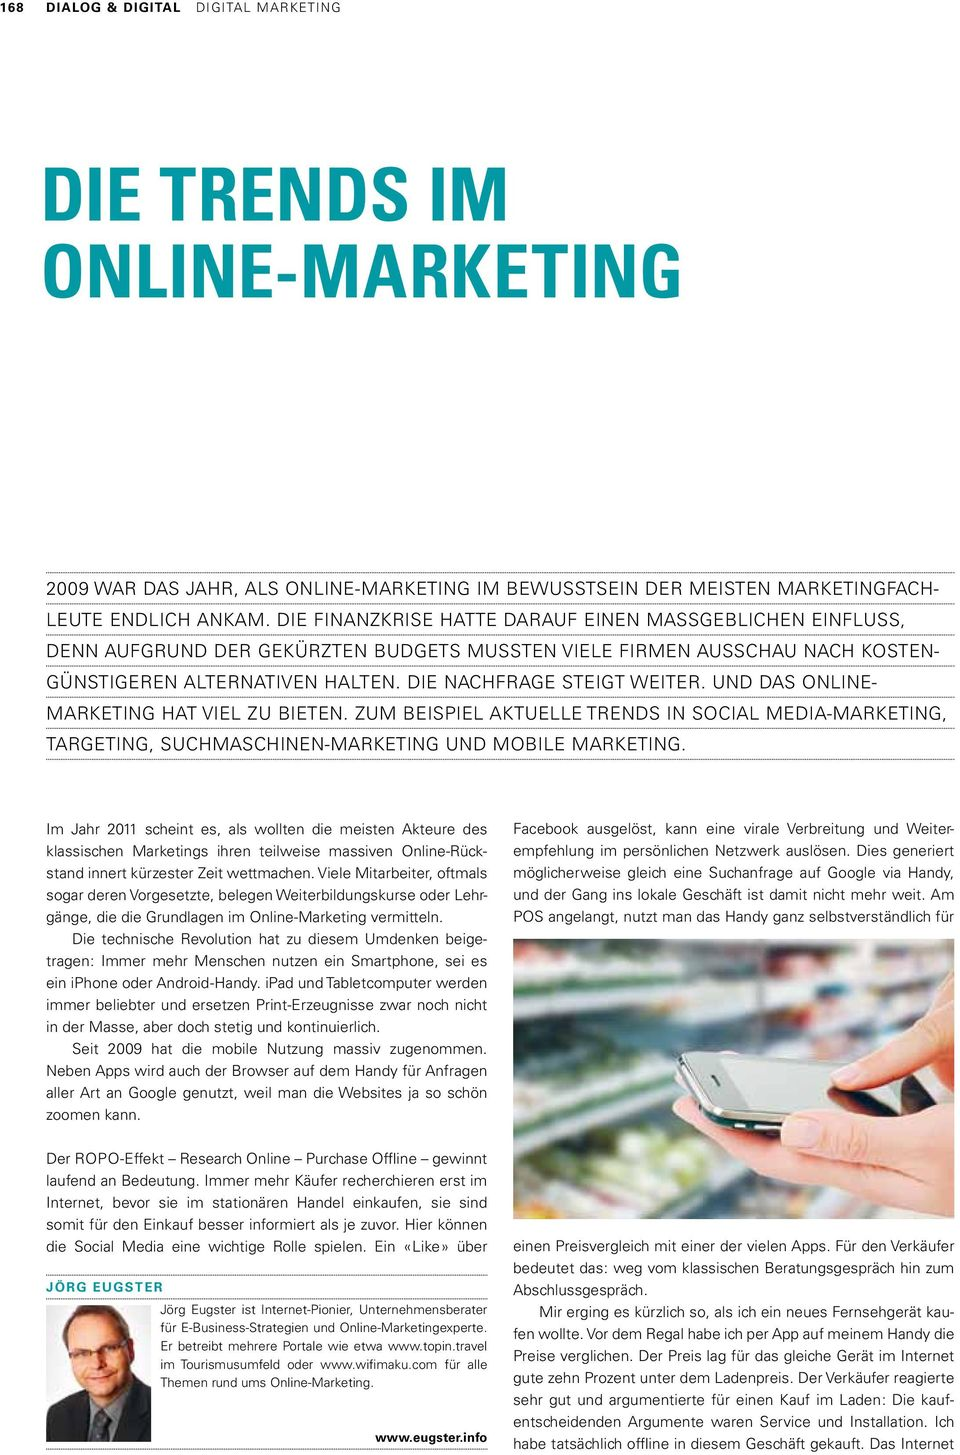 Und das Online- Marketing hat viel zu bieten. Zum Beispiel aktuelle Trends in Social Media-Marketing, Targeting, Suchmaschinen-Marketing und Mobile Marketing.